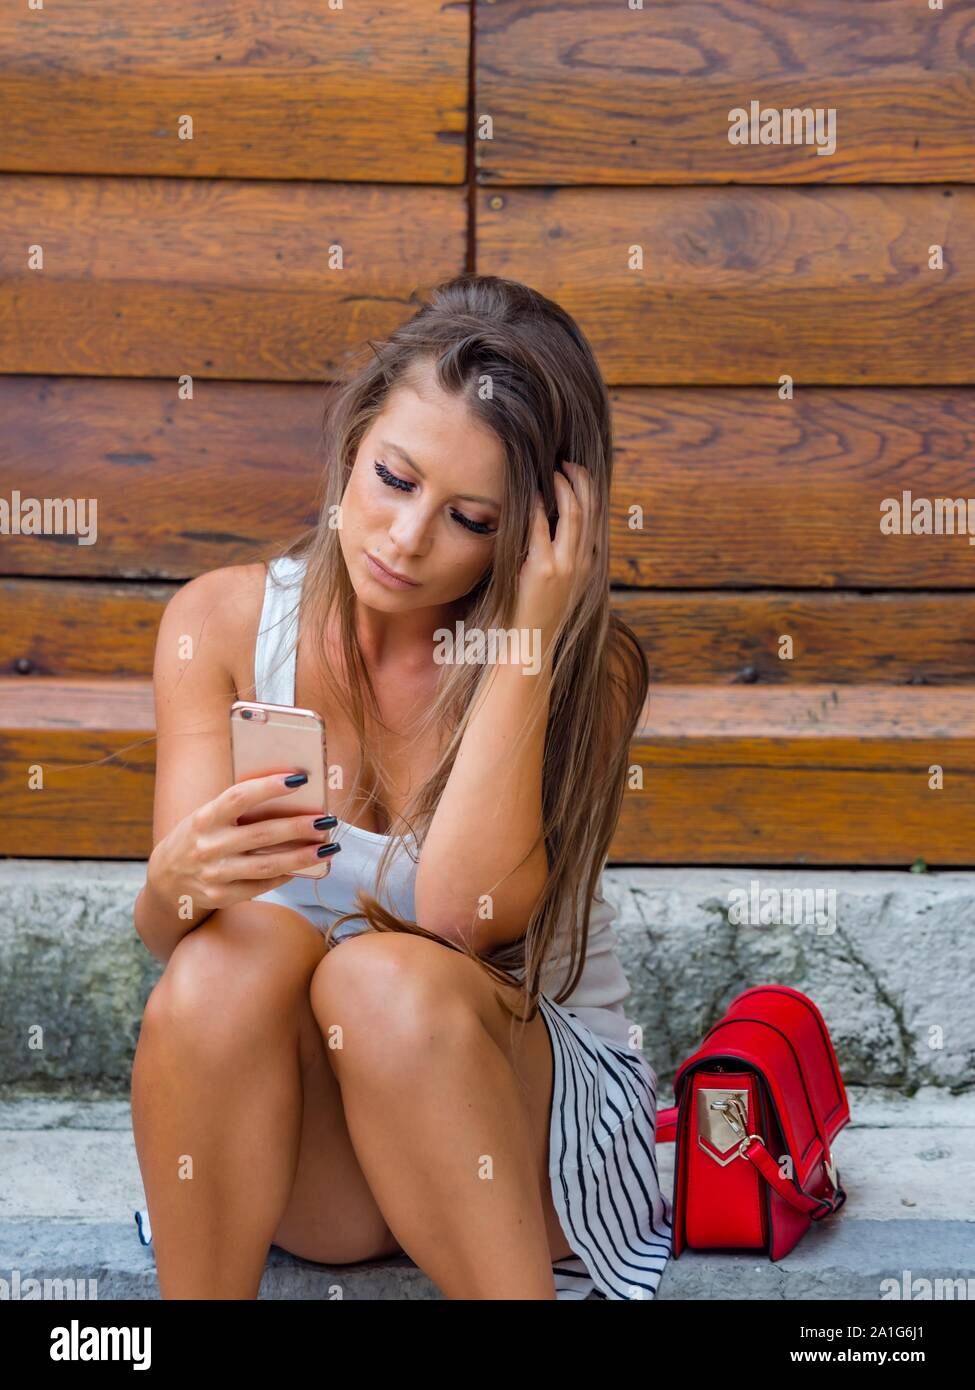 Looking at cellphone smartphone reading facebook sitting on entrance porch doorstep before wooden doors door communicate communicating viber message Stock Photo